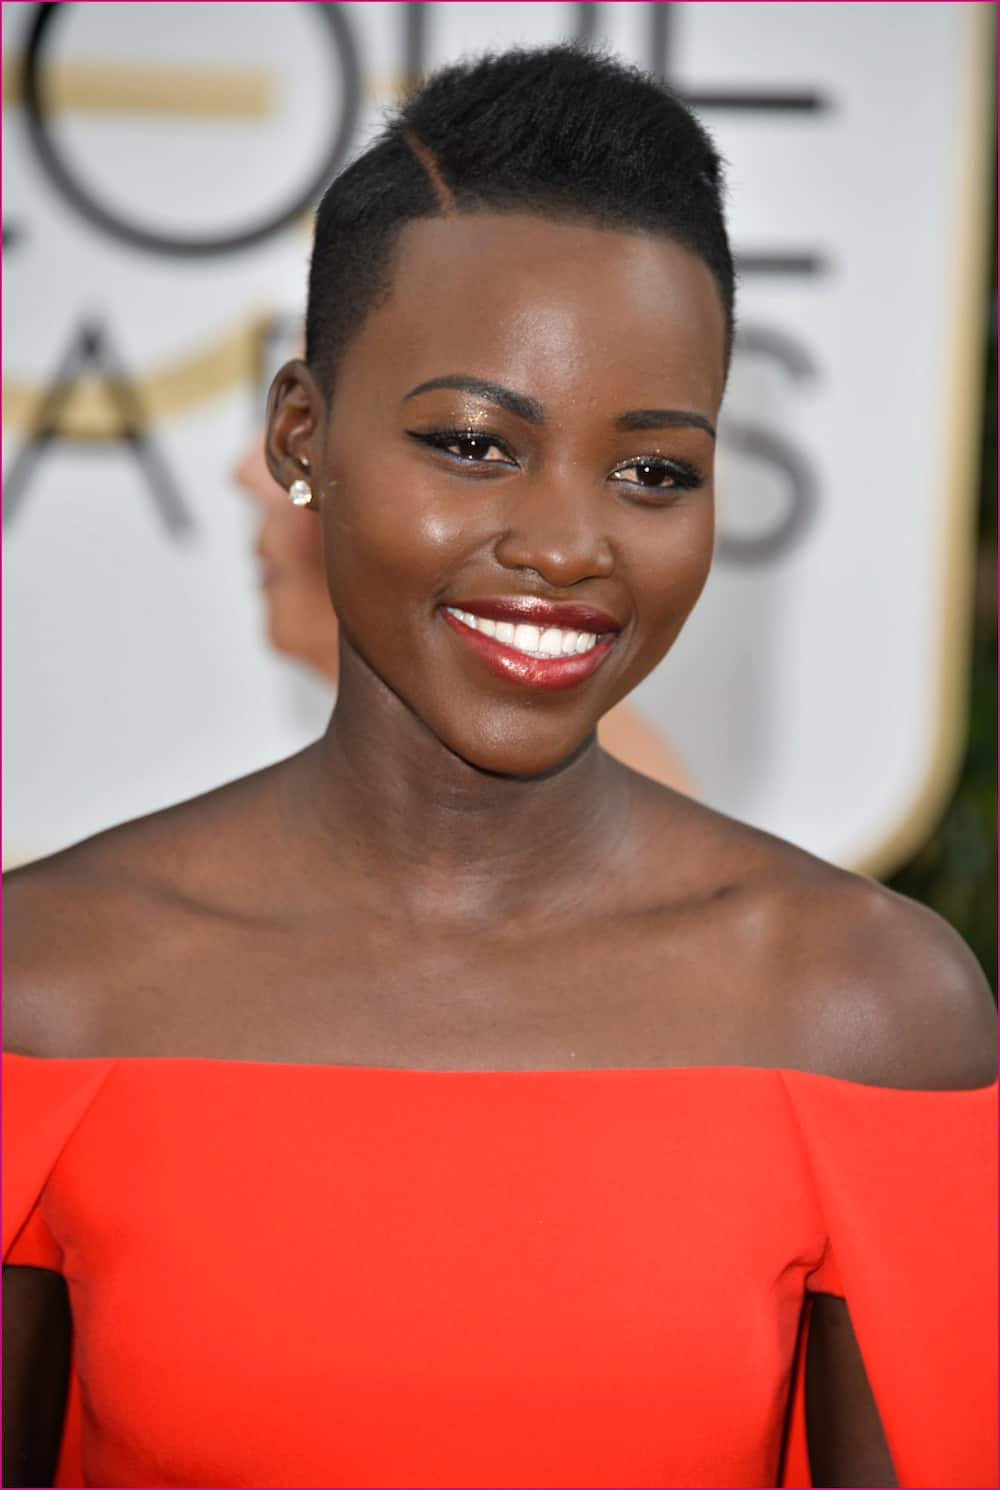 Low cut hairstyles for round faces